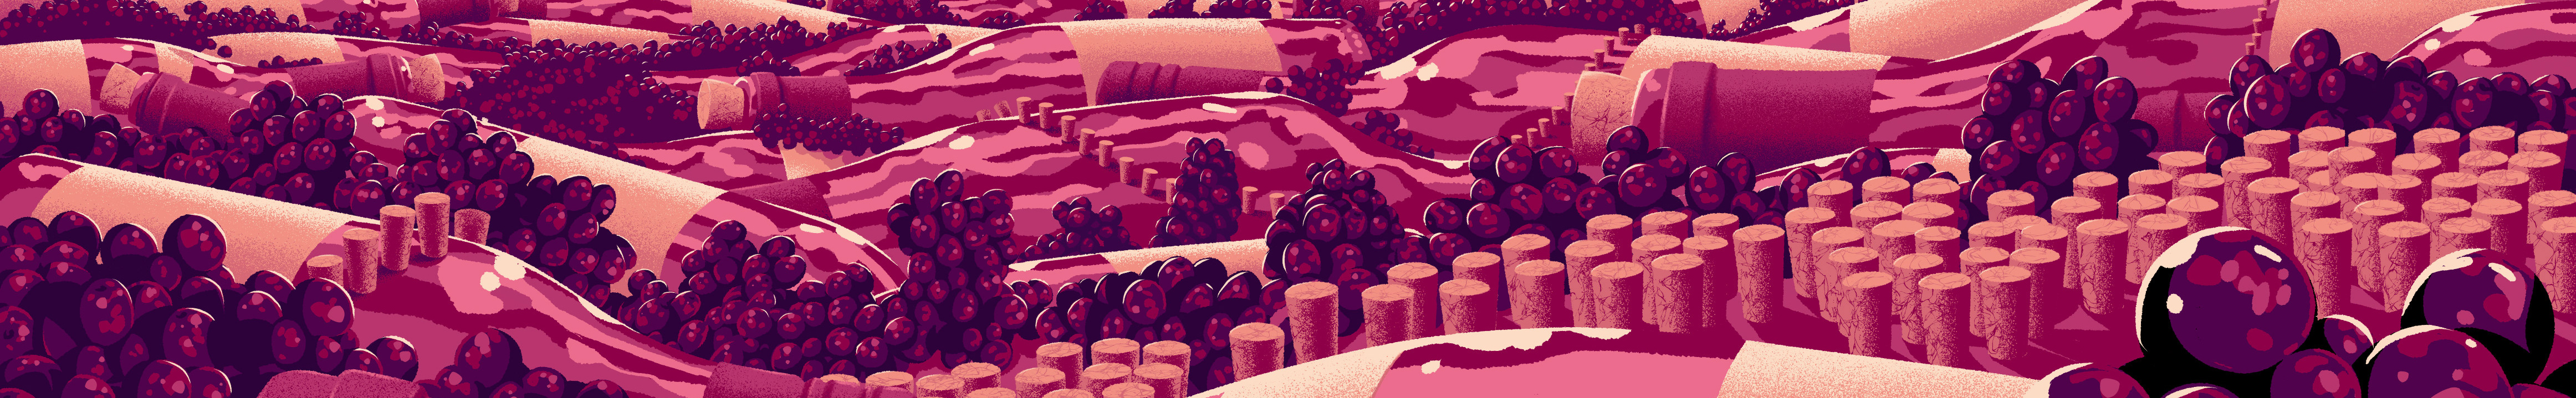 $translate('profile_banner_image_alt', 'User's profile banner')